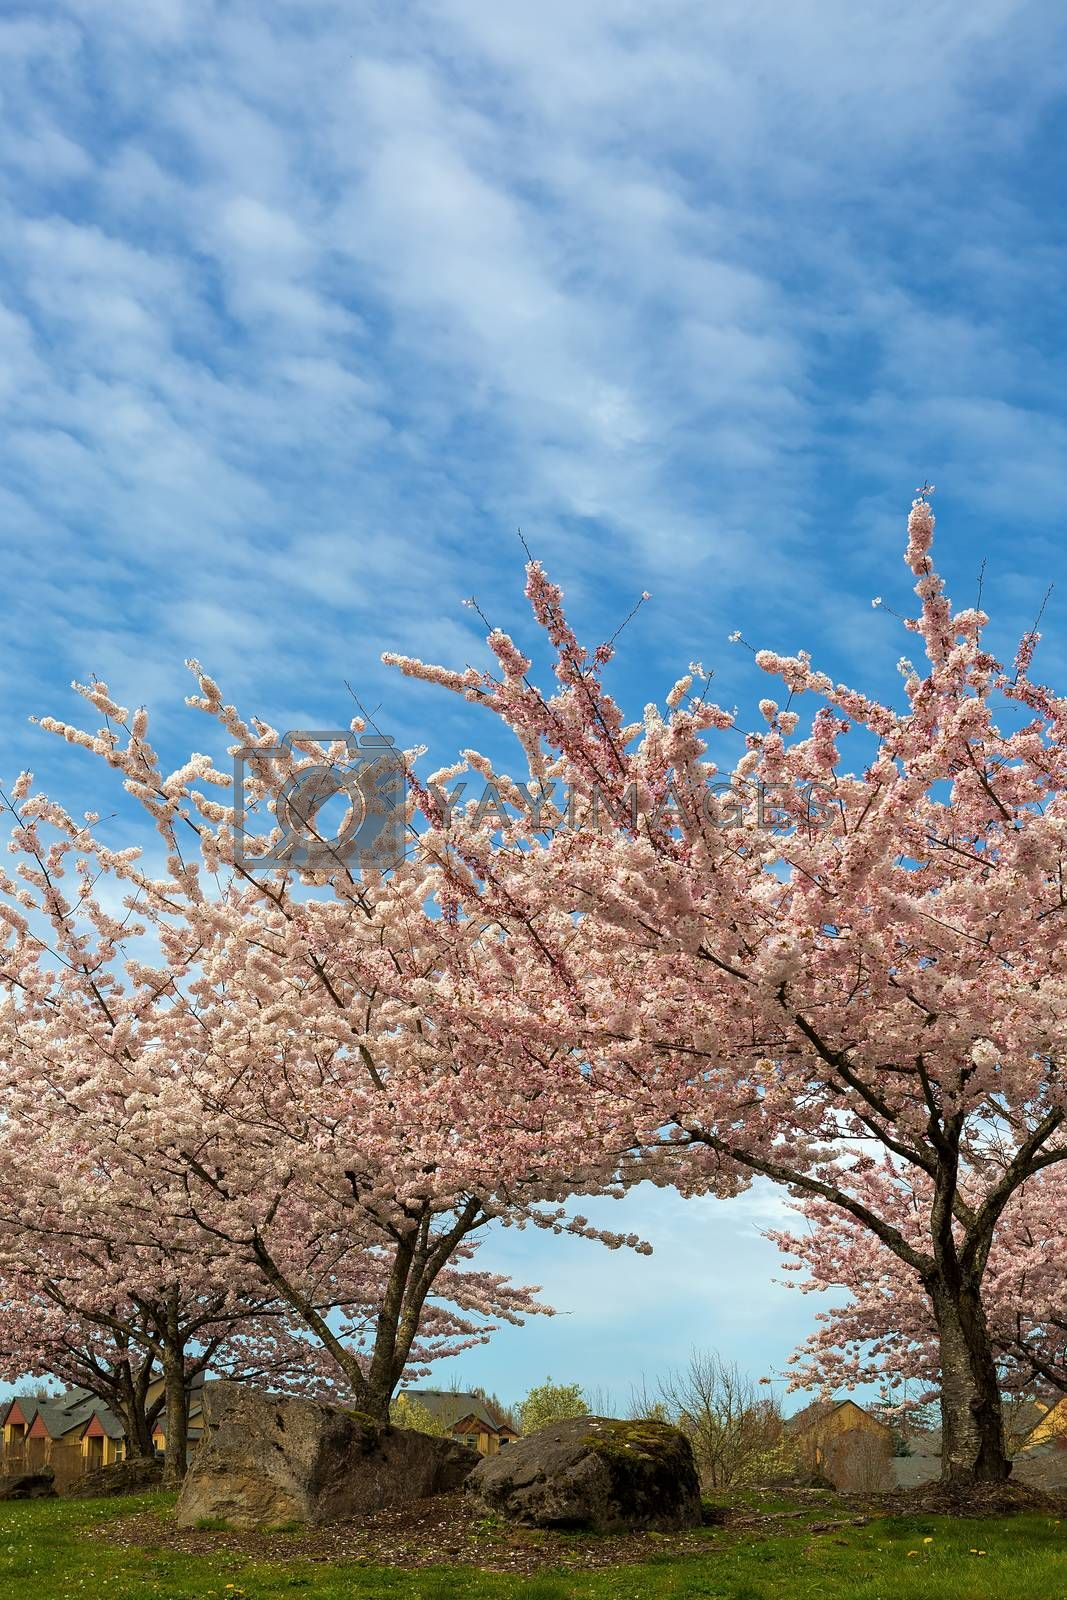 Cherry Blossom trees blooming in Village Green Park in Happy Valley Oregon suburban neighborhood during Spring season